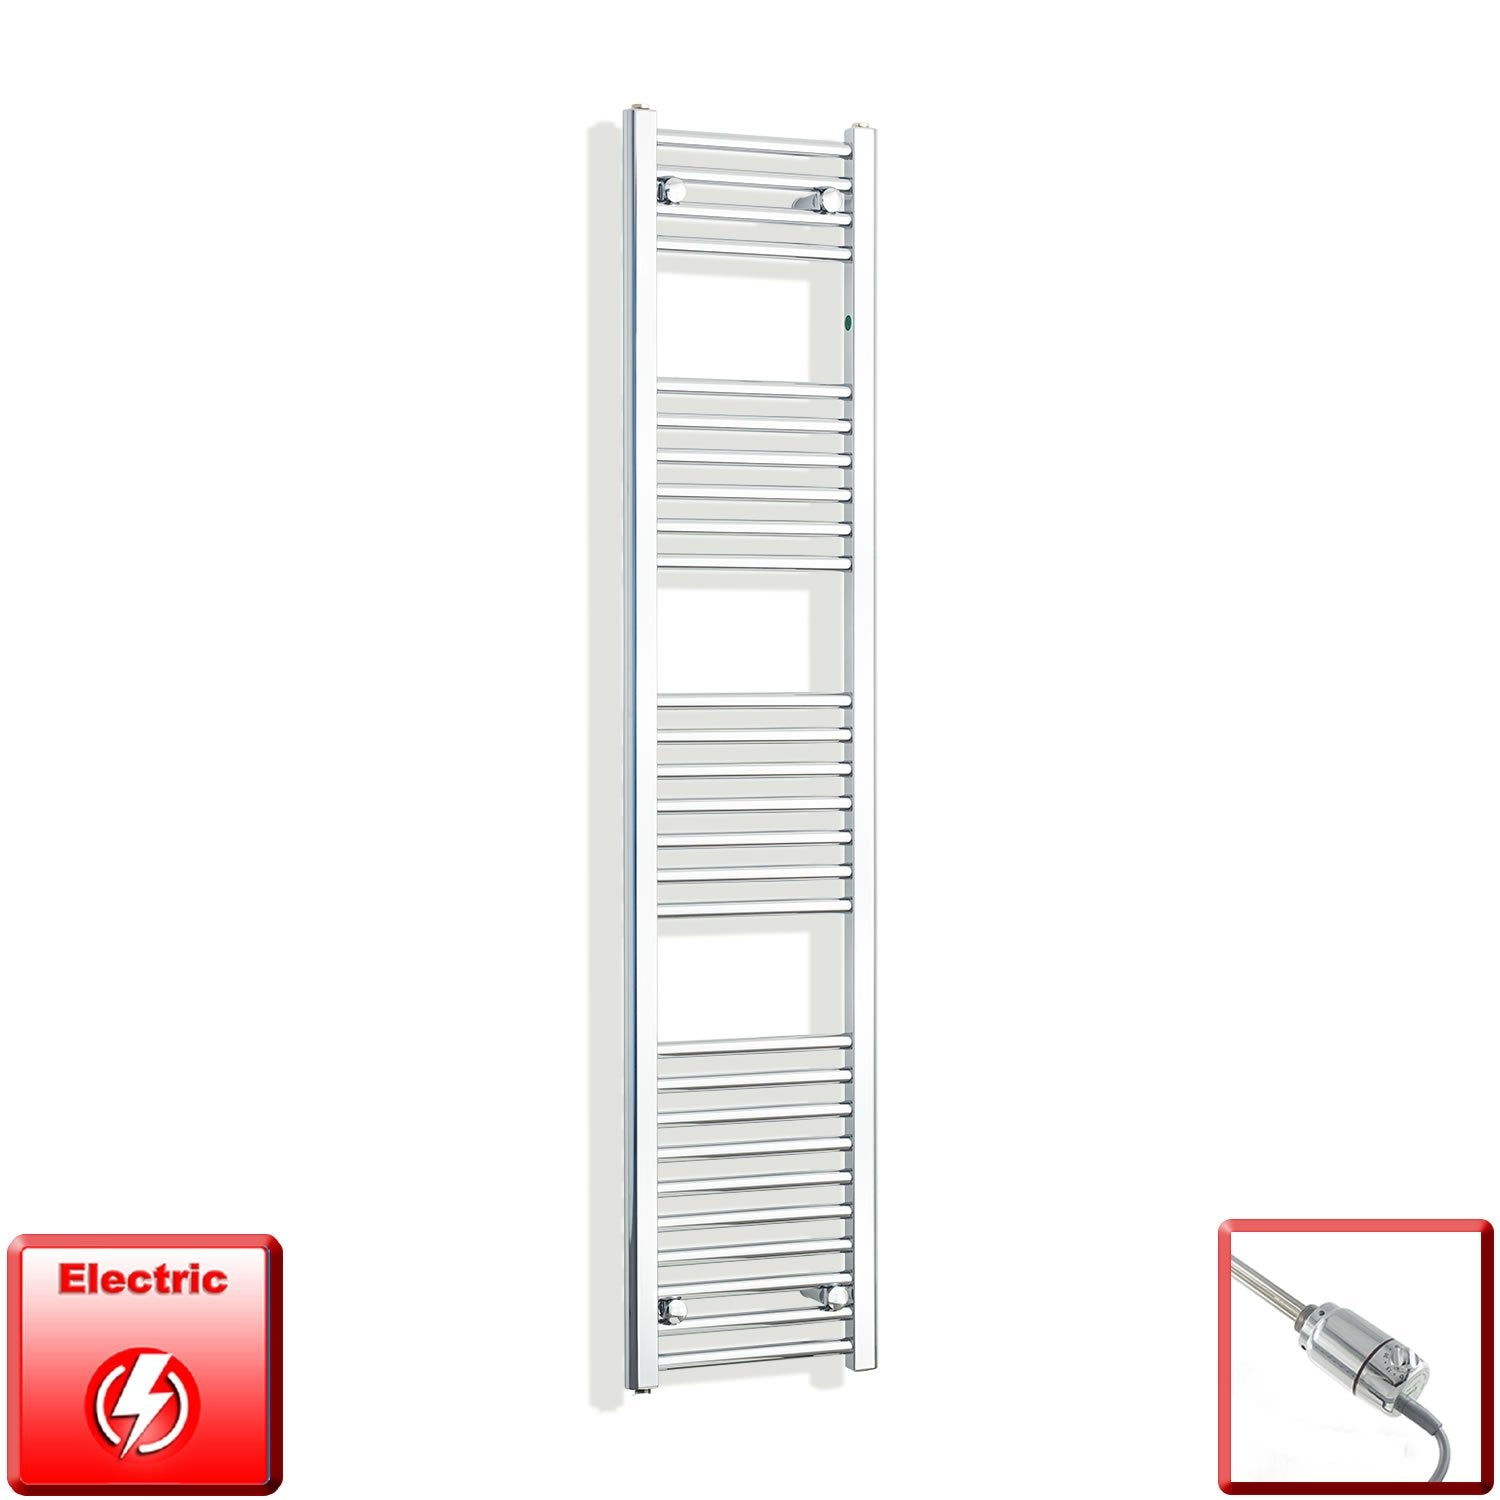 350mm Wide 1600mm High Flat Chrome Pre-Filled Electric Heated Towel Rail Radiator HTR,GT Thermostatic